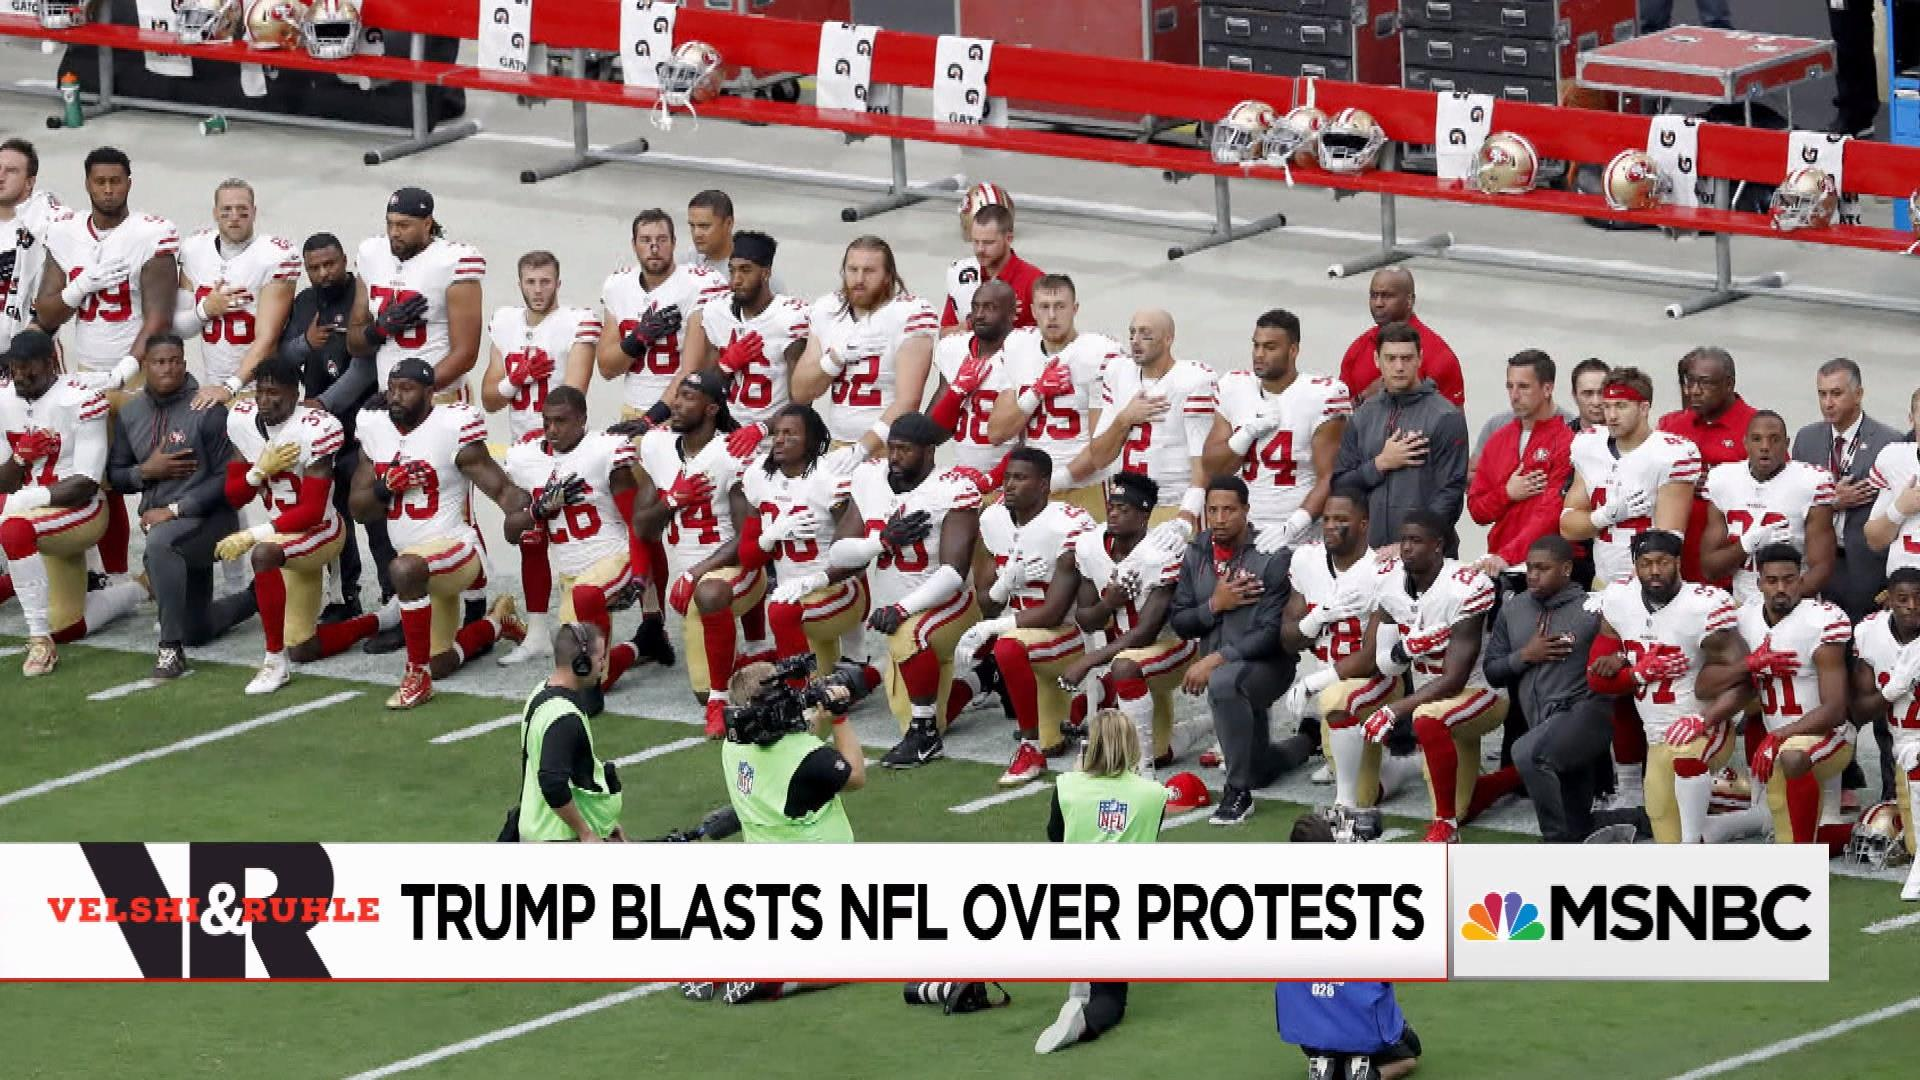 Trump Blasts NFL Over Protests